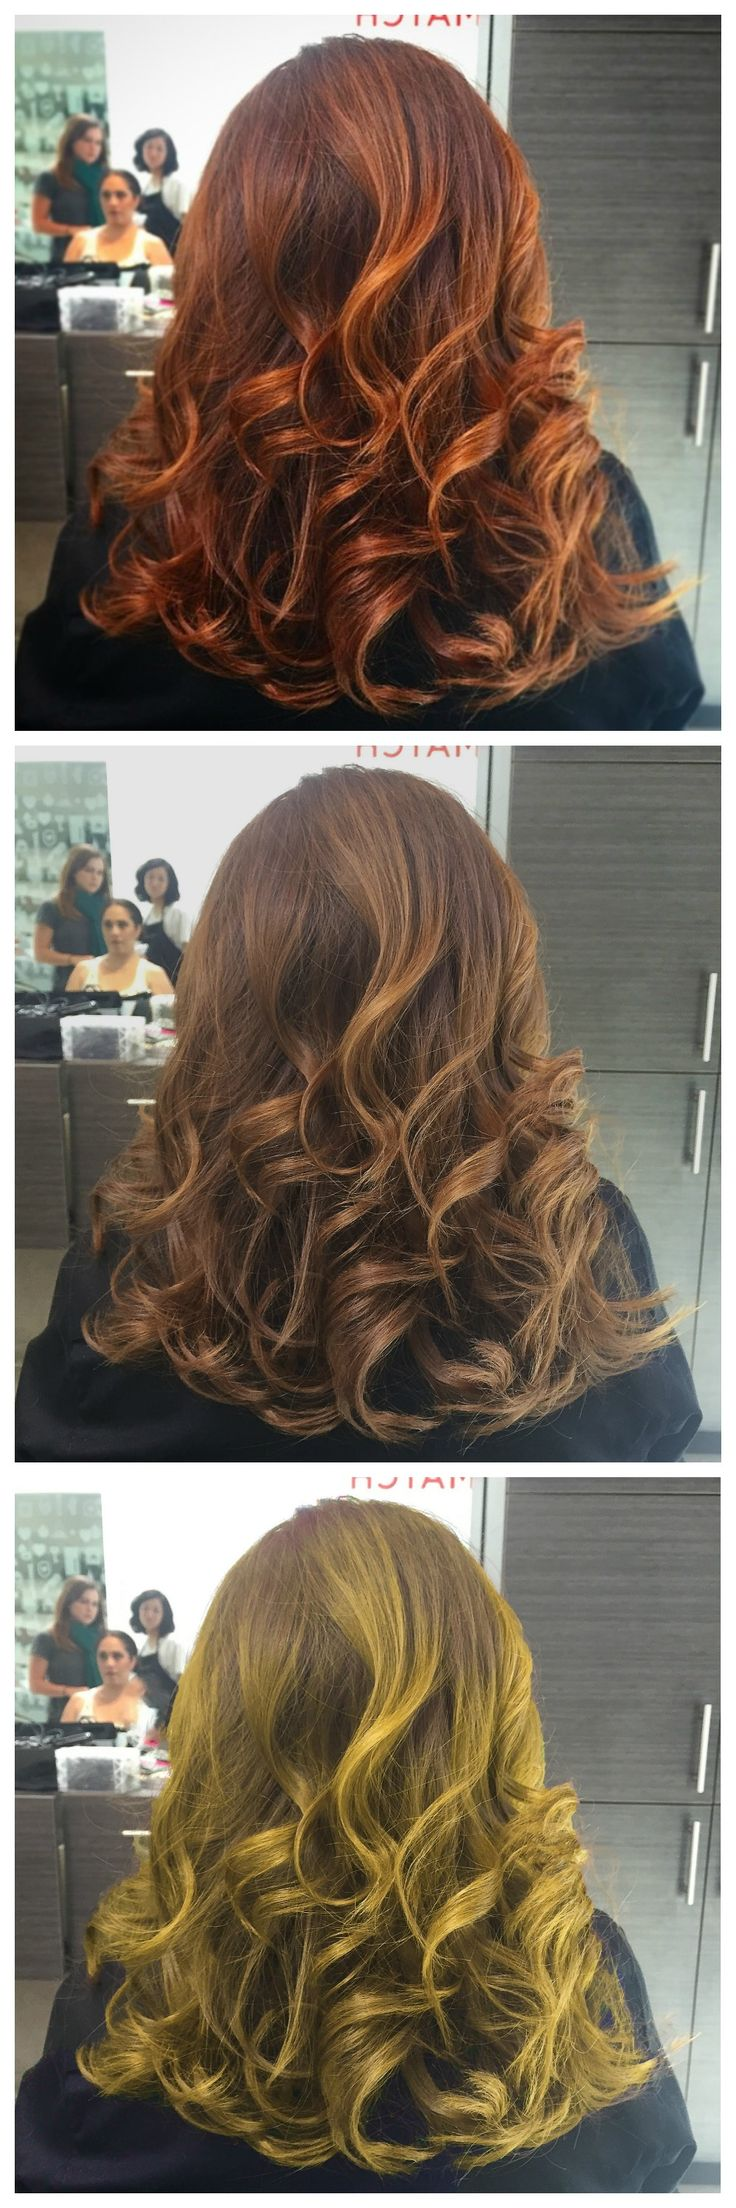 362 best hair stylist 3 images on pinterest hairstyles braids new diy hair color you should try if you color your hair at home do yourself a favor ditch the drugstore box and try this new gray hair solution solutioingenieria Choice Image